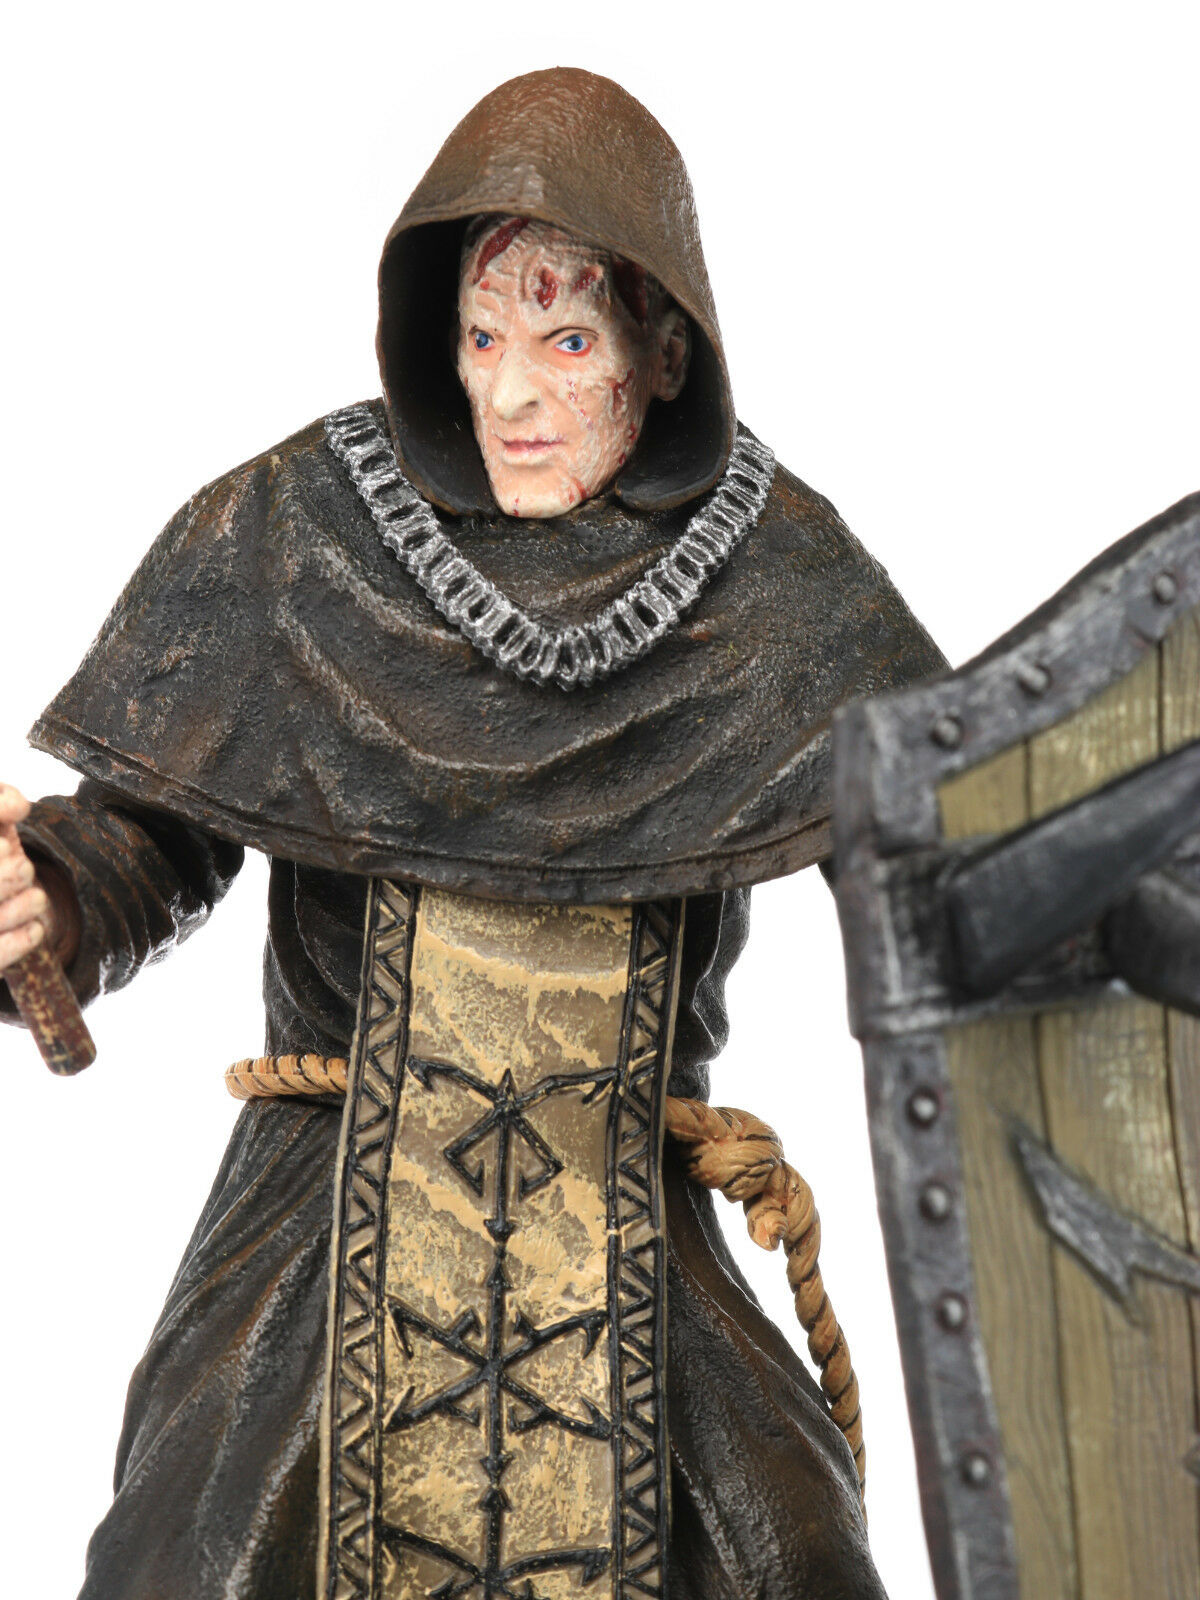 Resident Evil 4 Series 2 Hood & Shield LOS ILLUMINADOS ILLUMINADOS ILLUMINADOS MONK Action Figure NECA 1d9a66